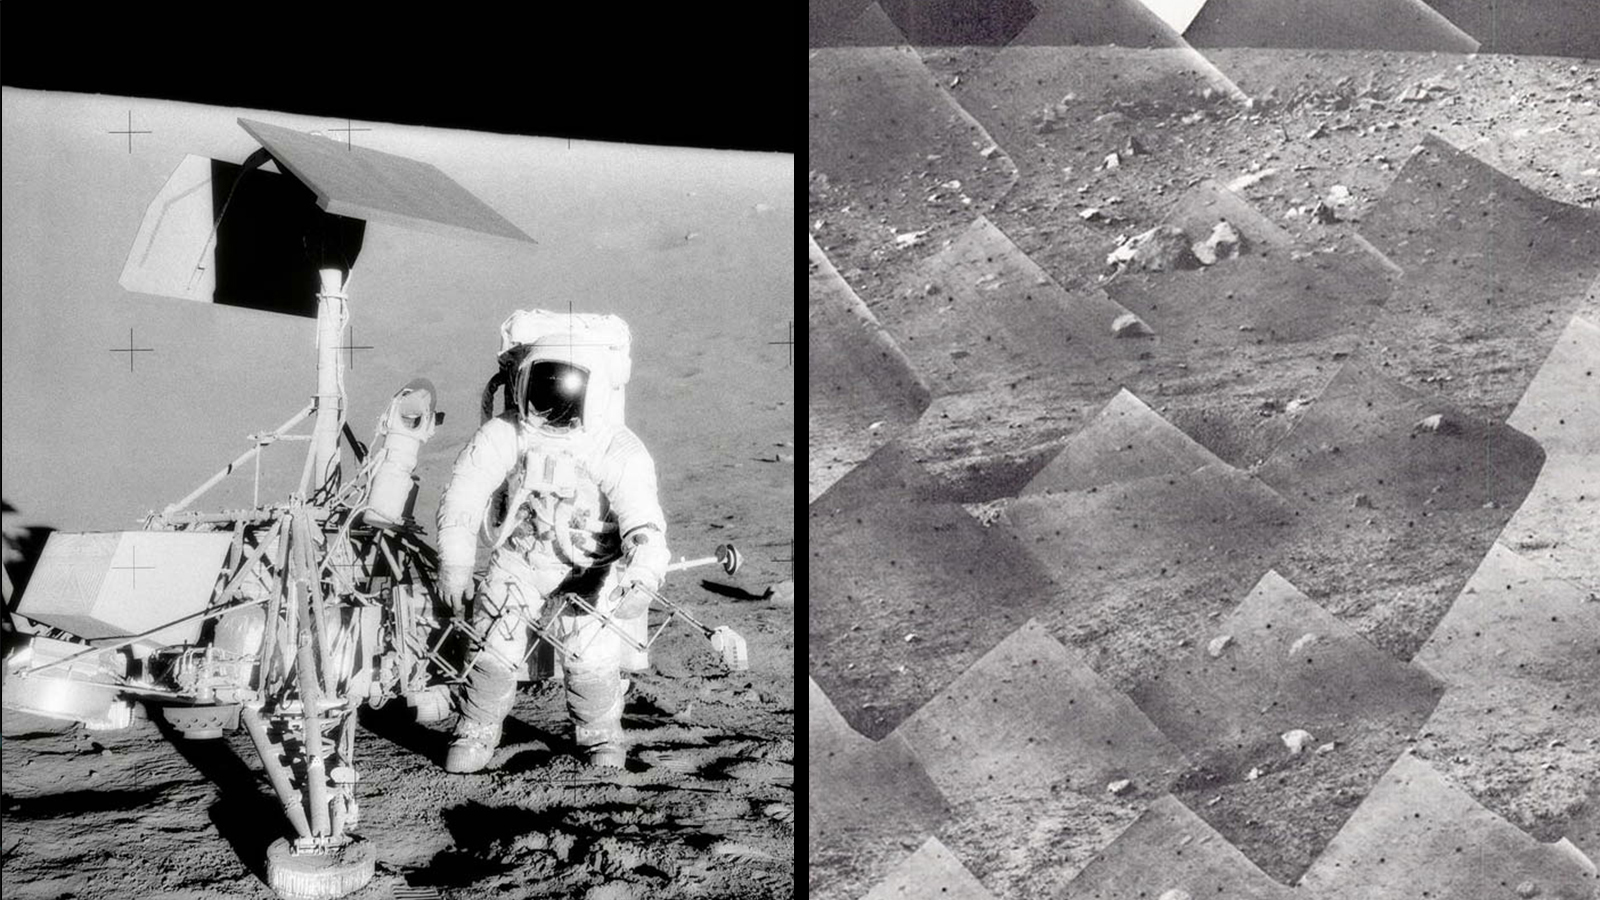 Side-by-side image of an astronaut next to the Surveyor 7 lander and a mosaic of images from Surveyor 3